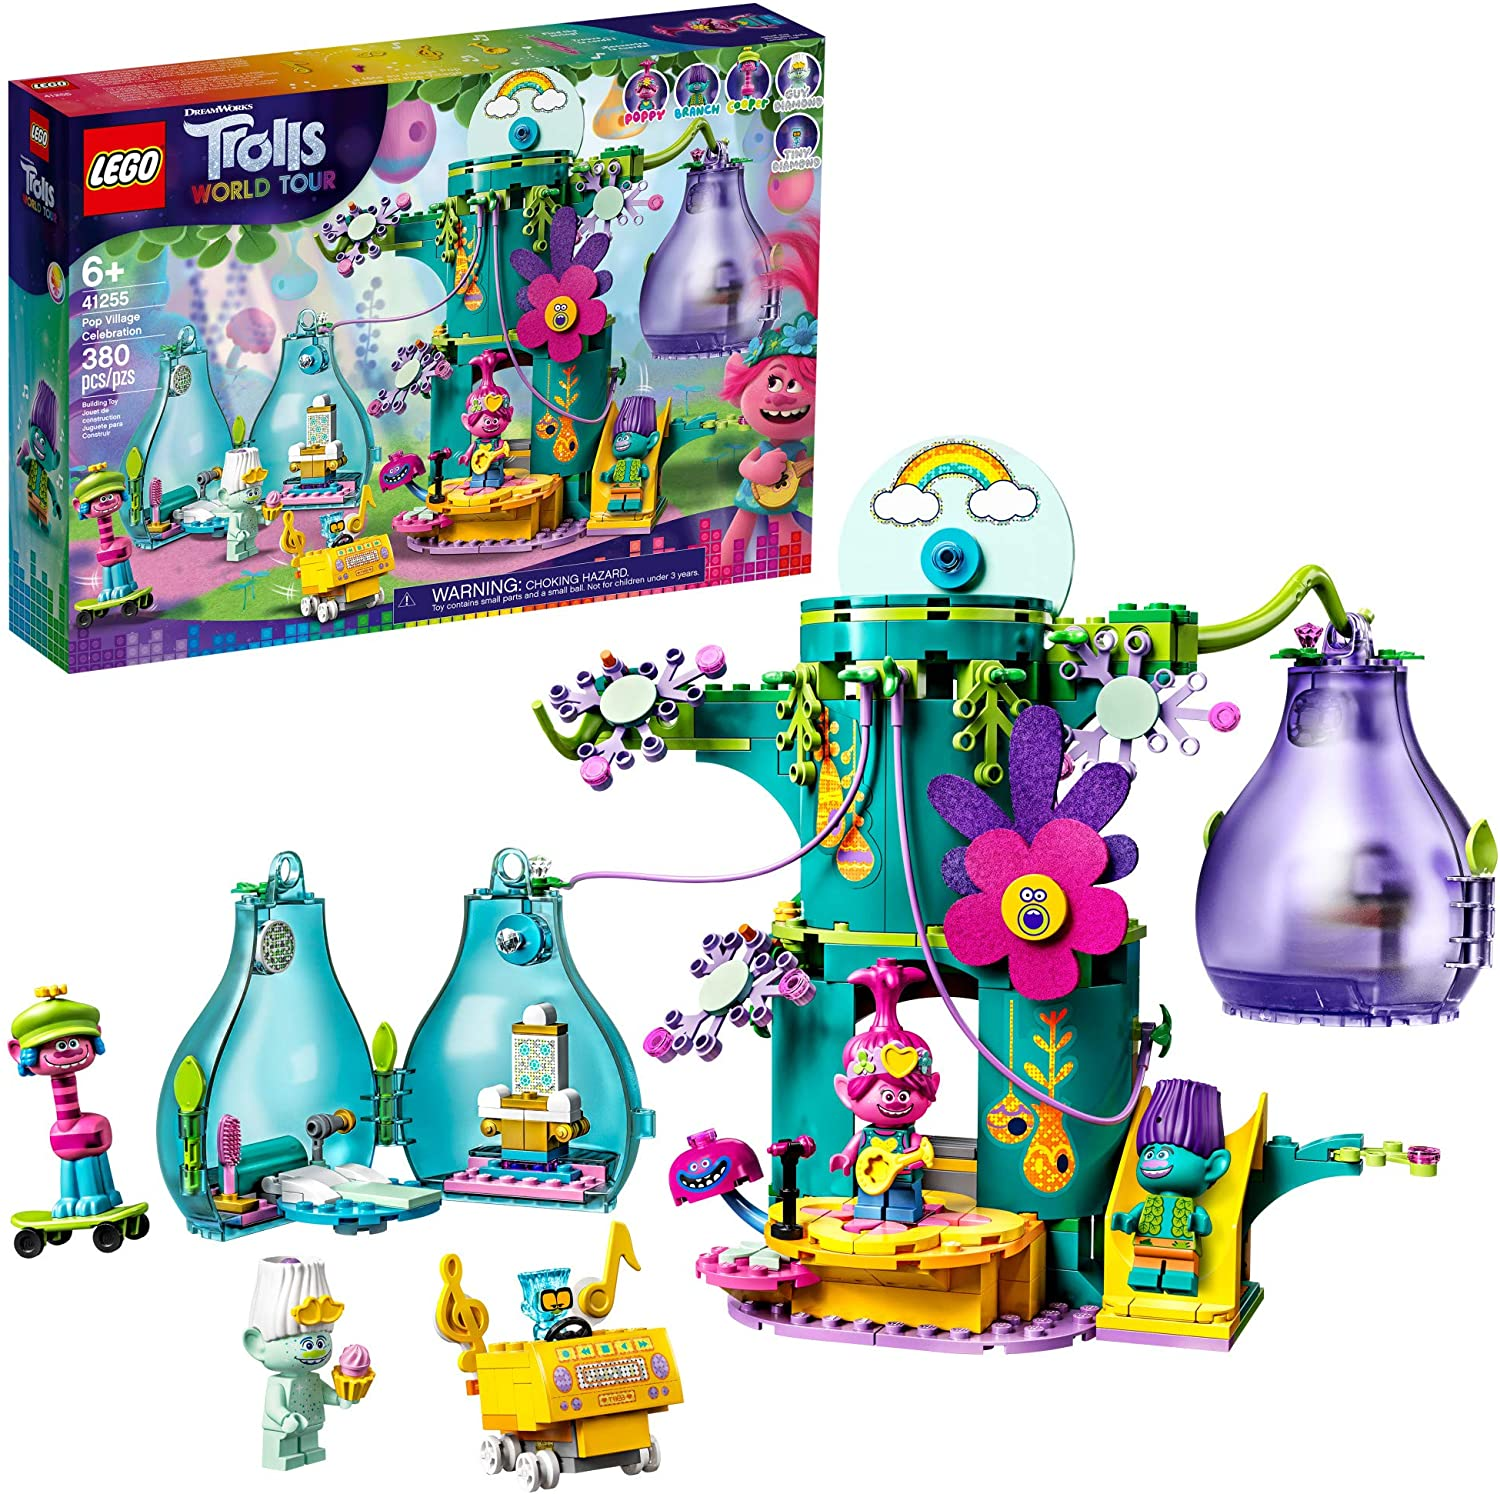 LEGO Trolls World Tour Pop Village Celebration 41255 Trolls Tree House Building Kit for Kids, New 2020 (380 Pieces)